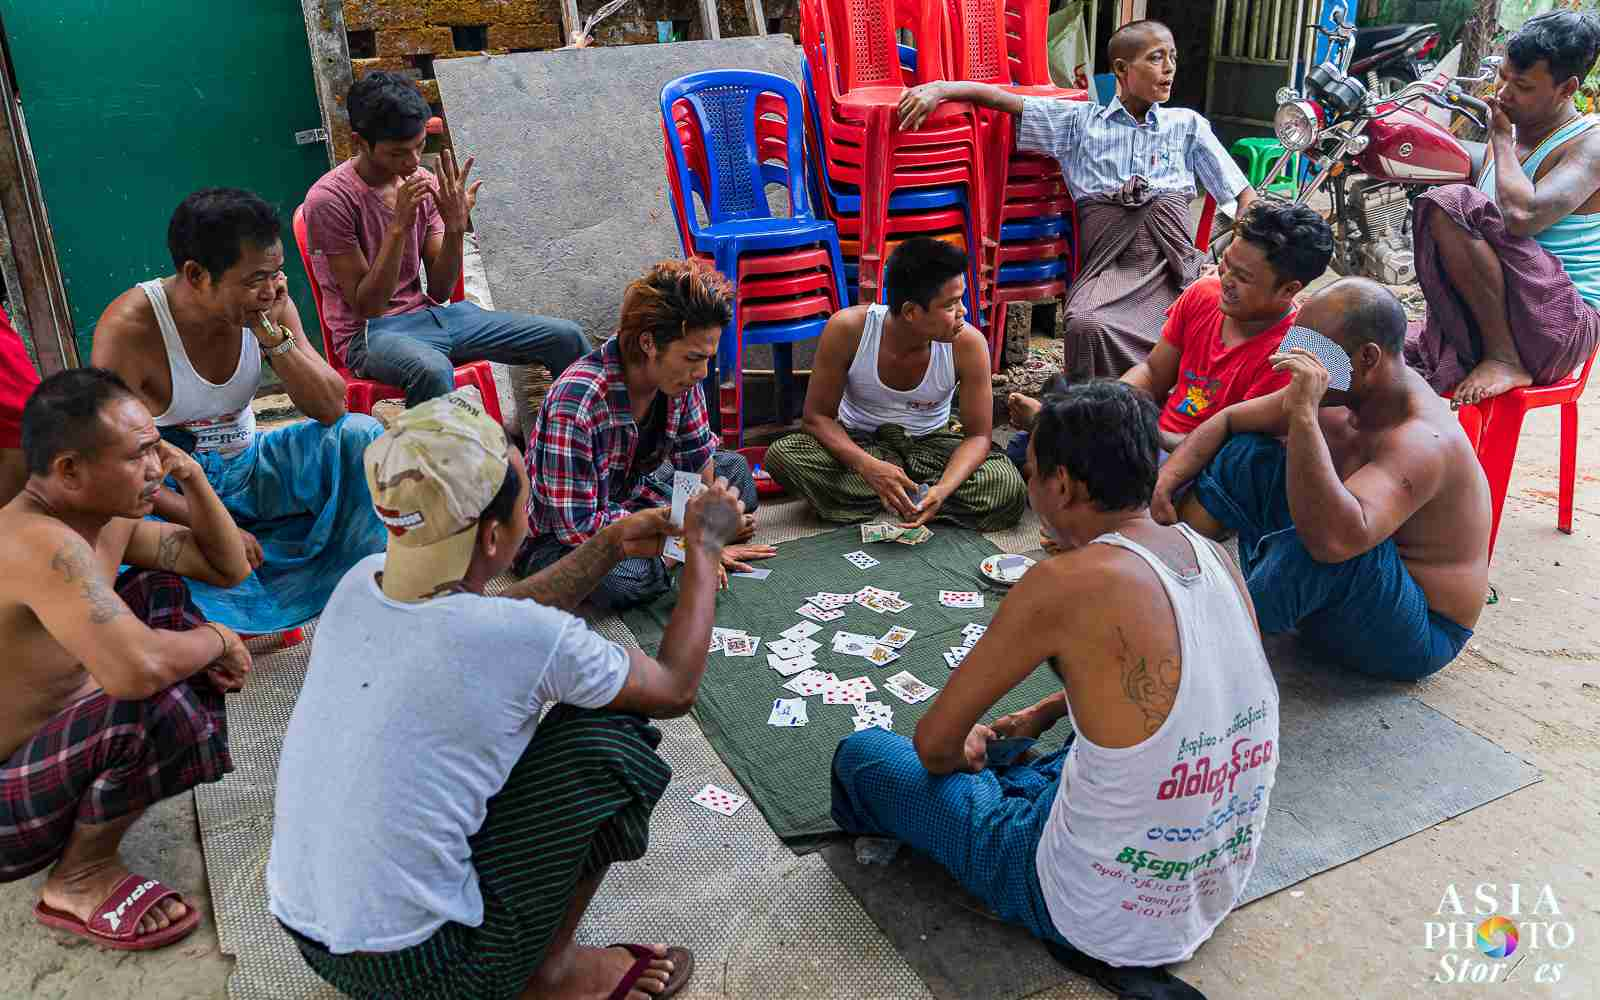 Men play cards in a slum village off the Yangon train line.